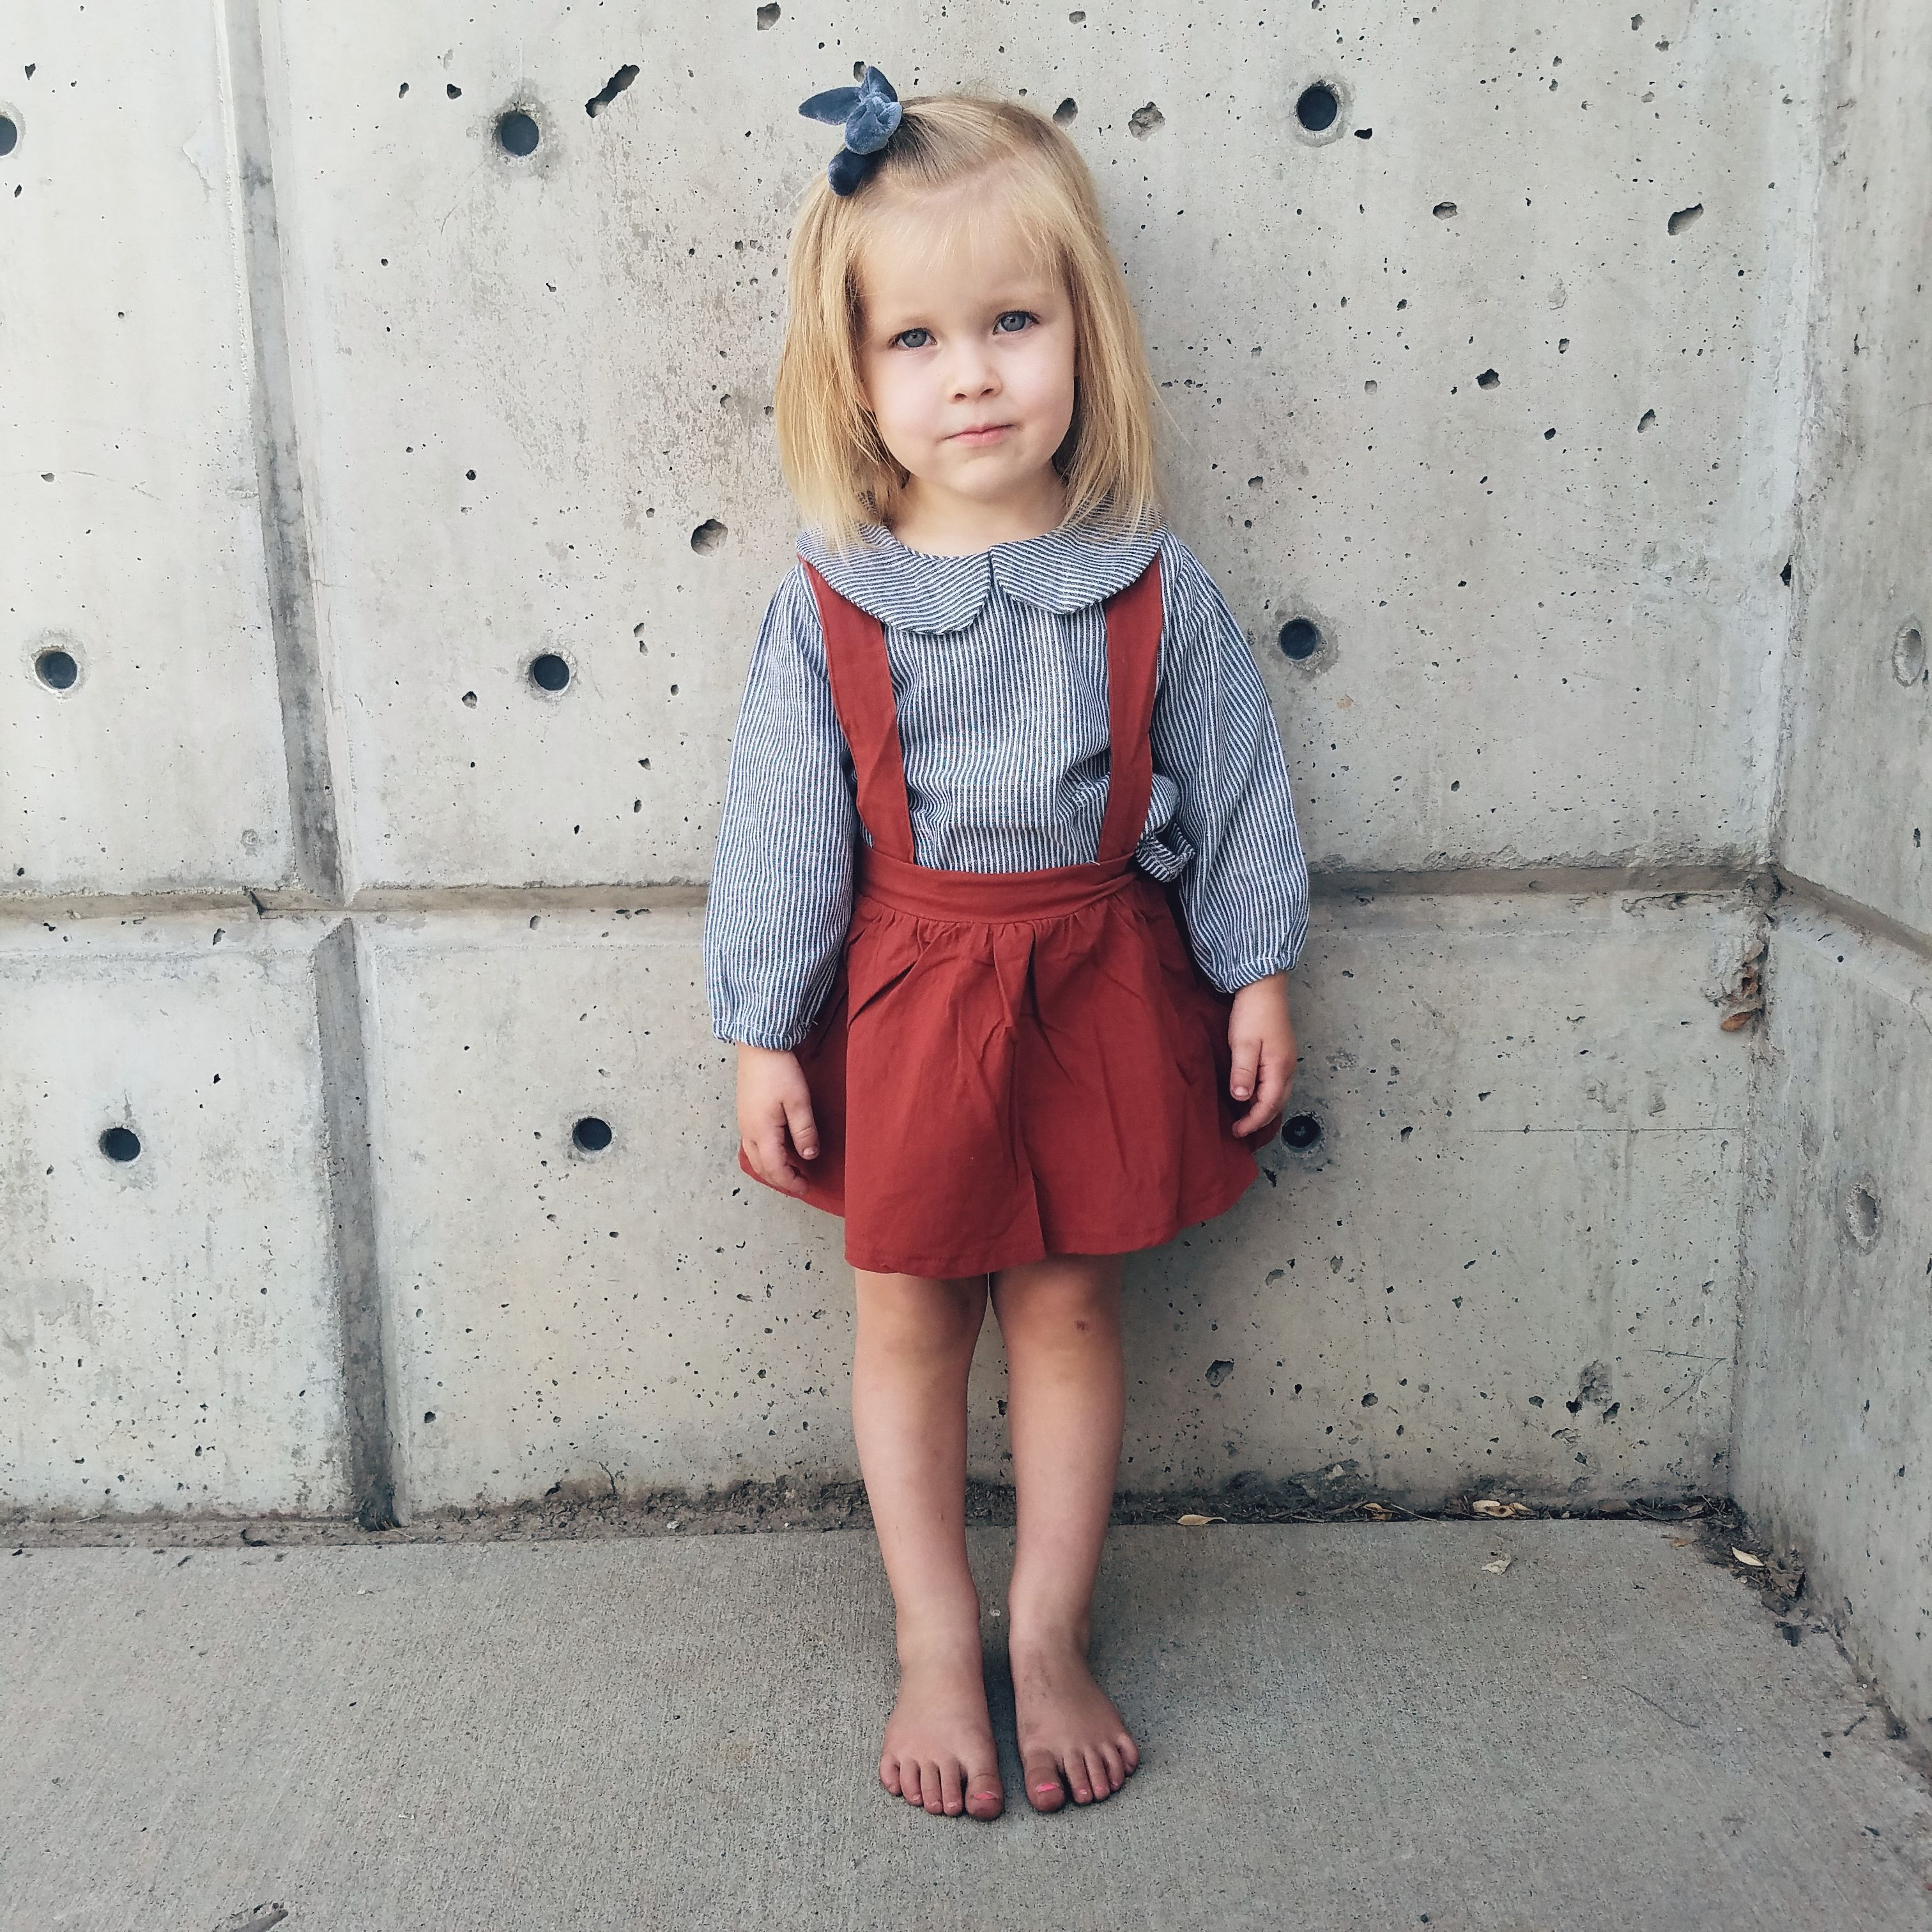 Chambray striped top with collar brown overall skirt both from